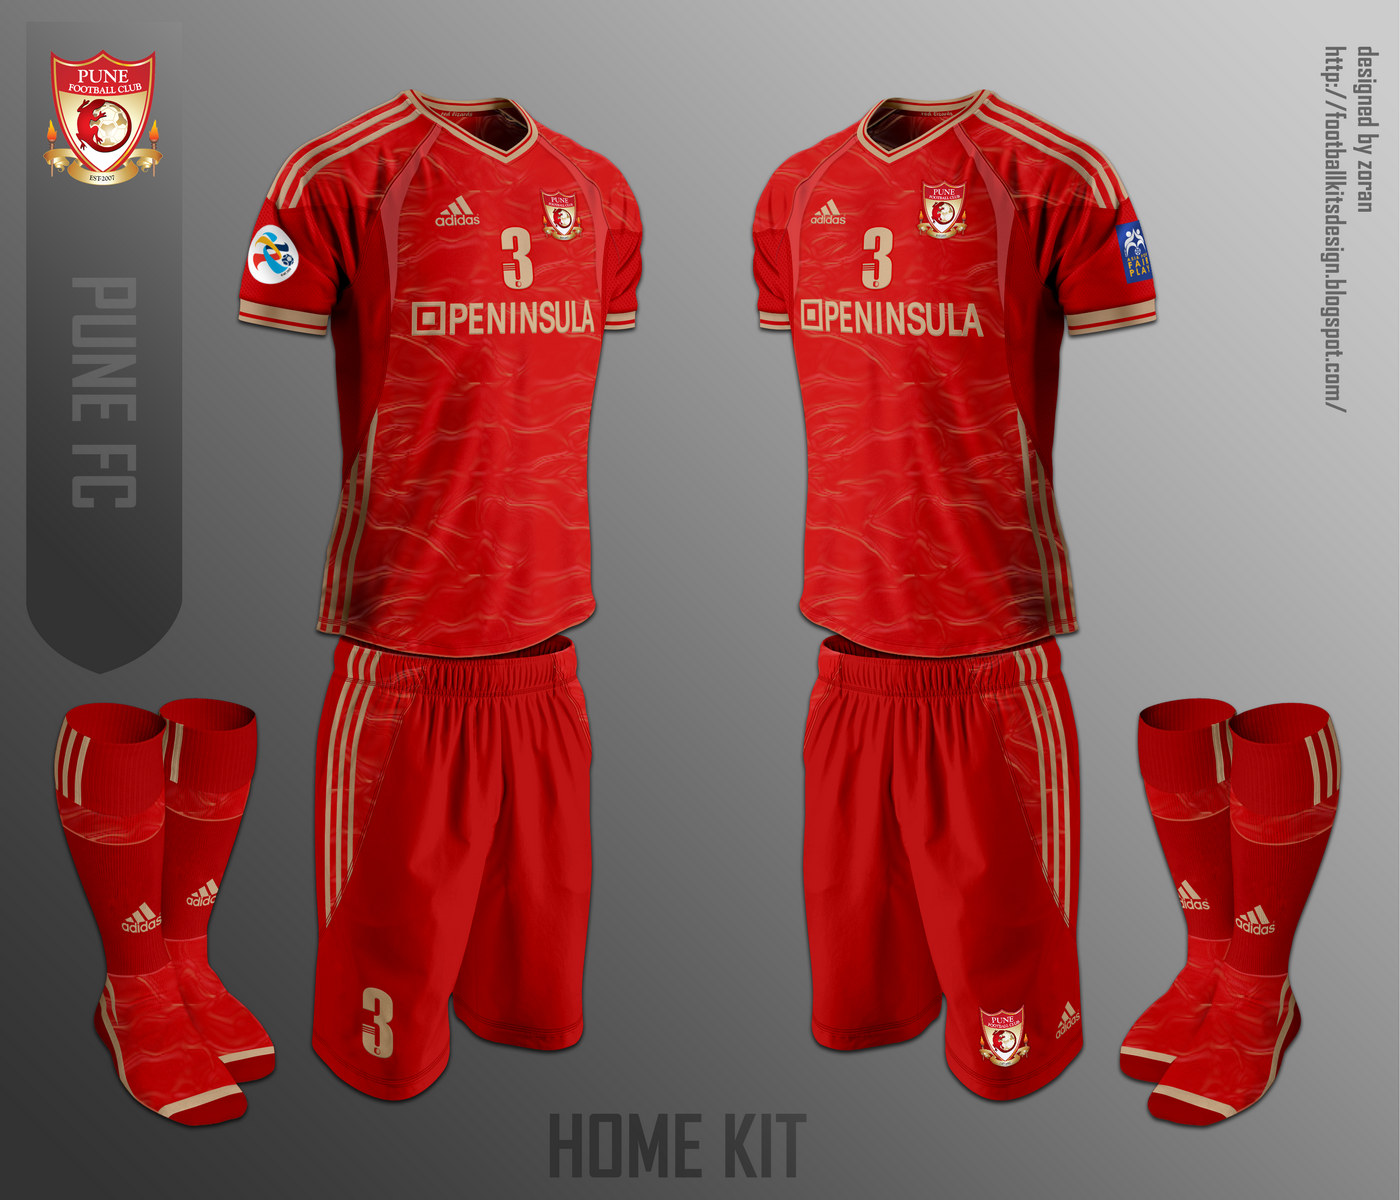 7af9ba362330 The home kit as presented in the Kit design competition from  DesignFootball.com